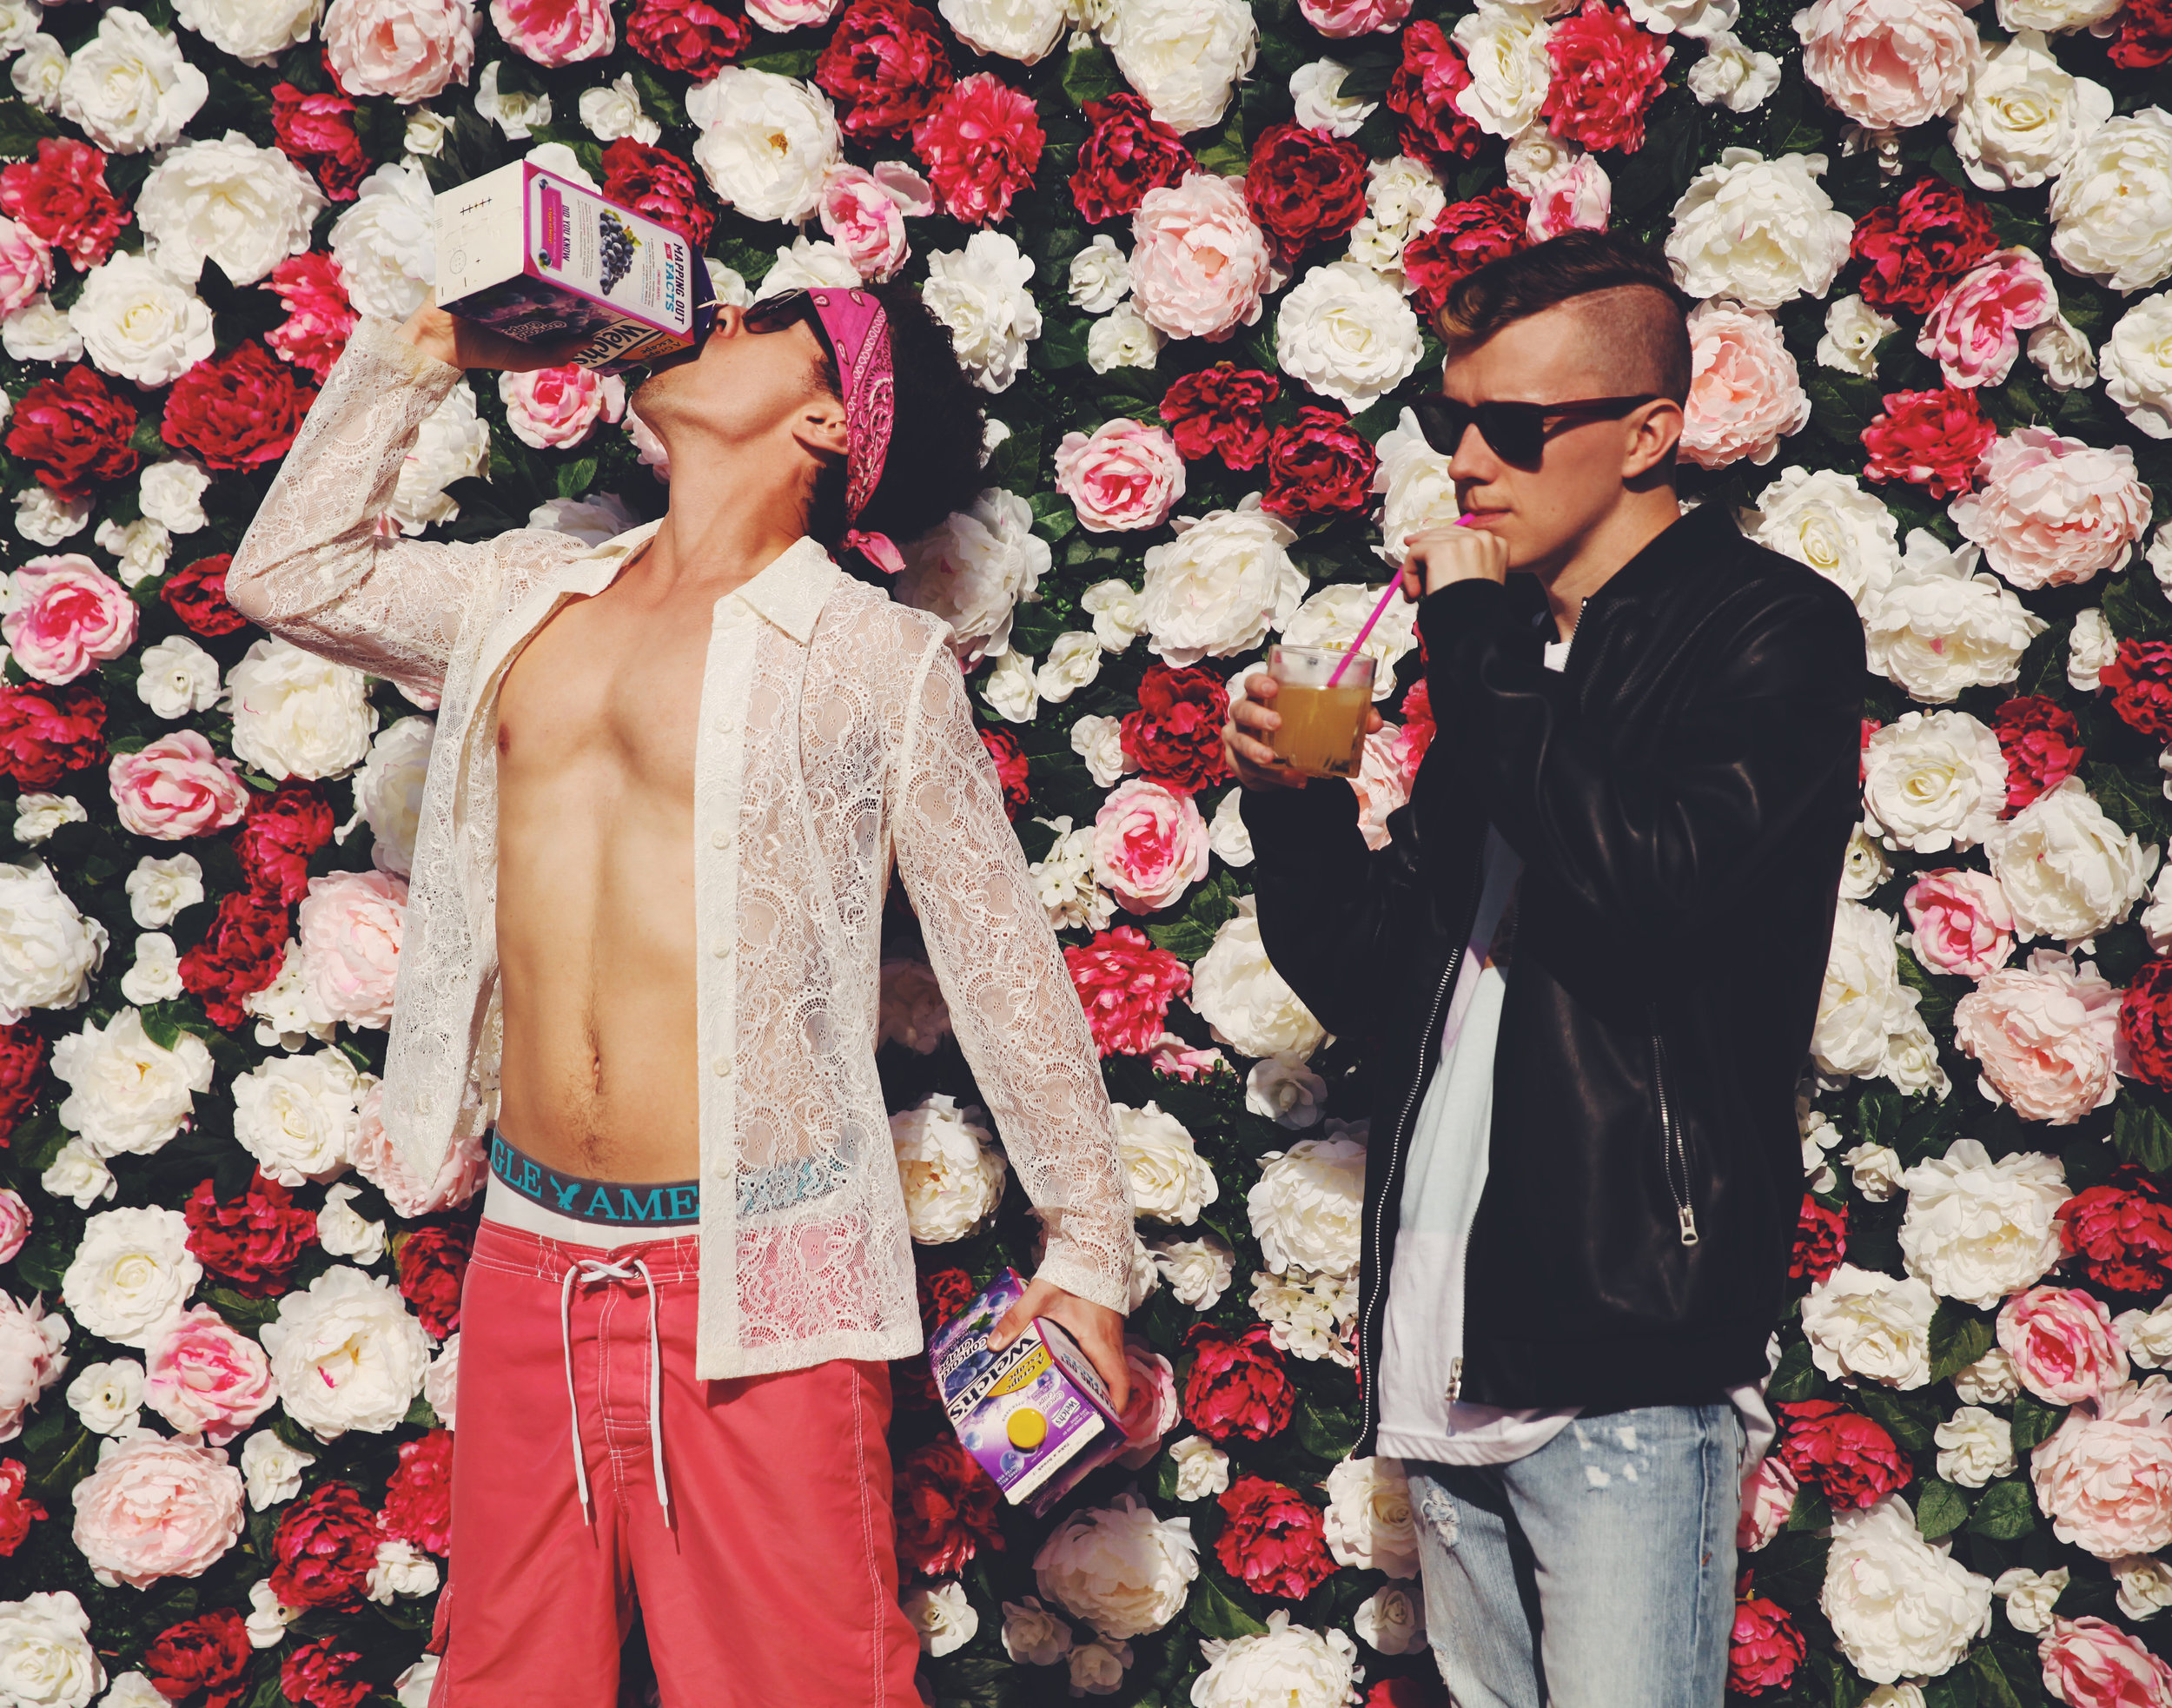 """PRTTY BOYS   Pop and Hip-Hop duo PRTTY BOYS are comprised of rapper & producer Alexander """"Spadez"""" Martinez alongside vocalist & producer Johnie B. In May 2018 they released their debut album """"The Juice Factory."""""""